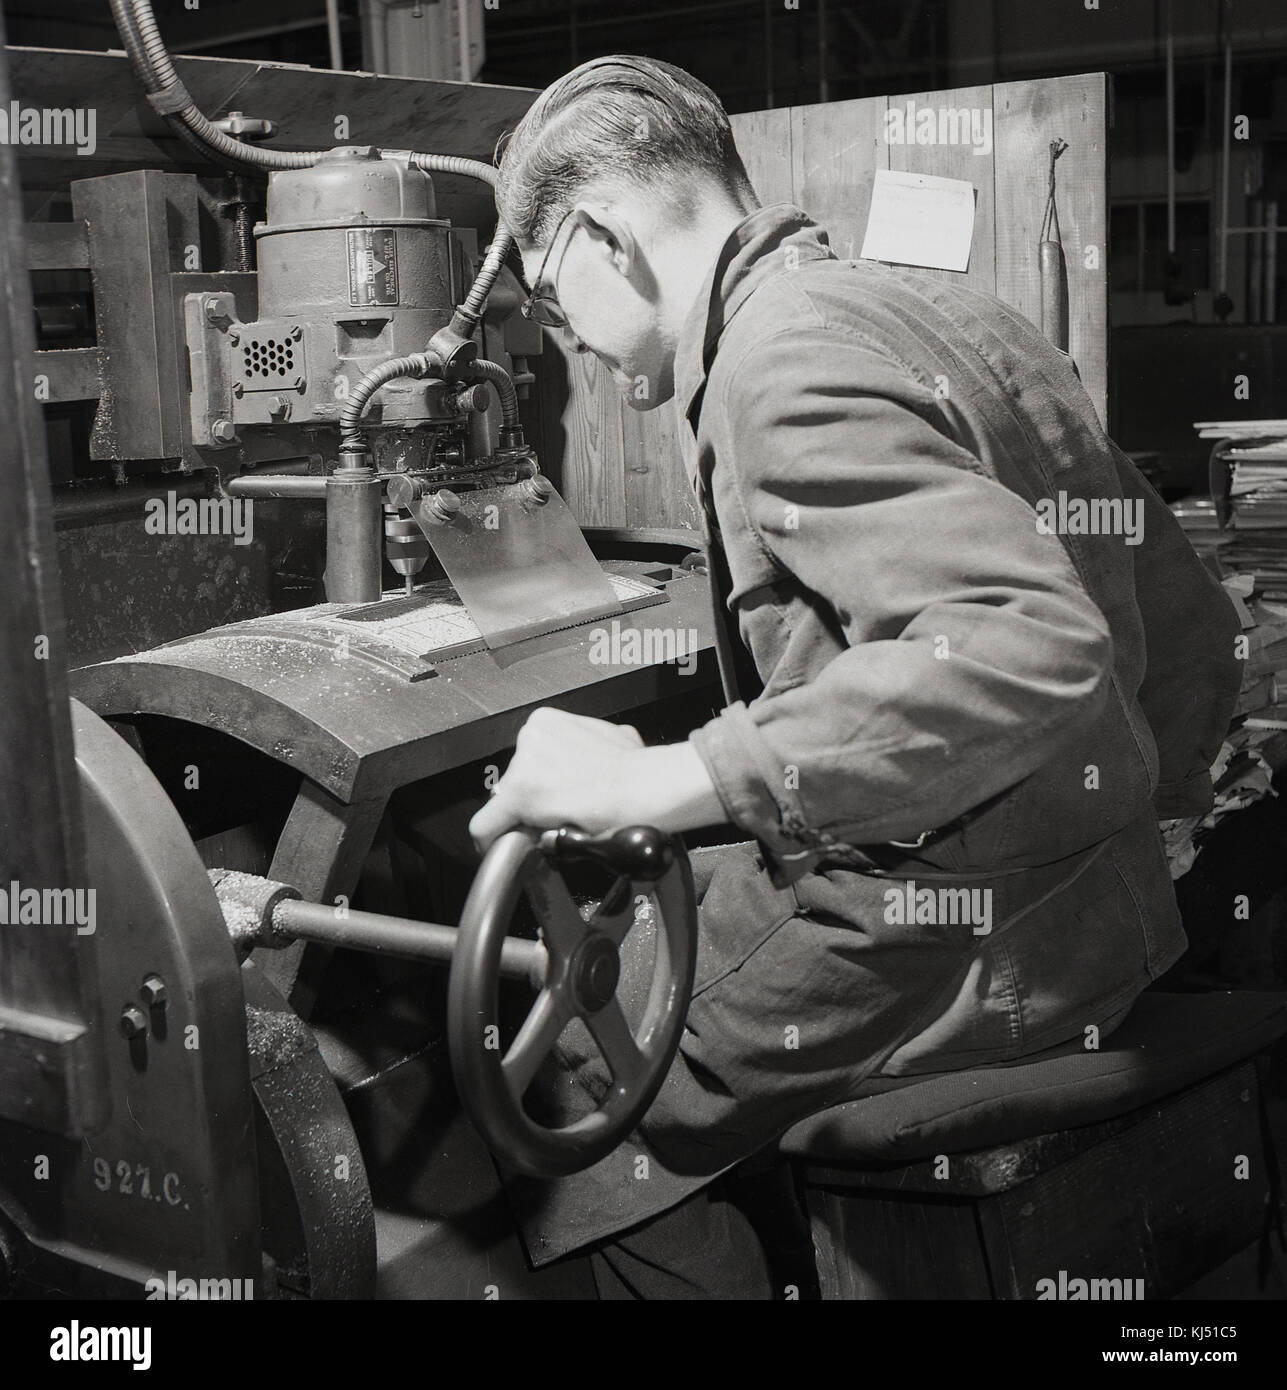 1950s, historical, male worker using a Fuller electric motor with drill and wheel to do precision metal  work, England, - Stock Image